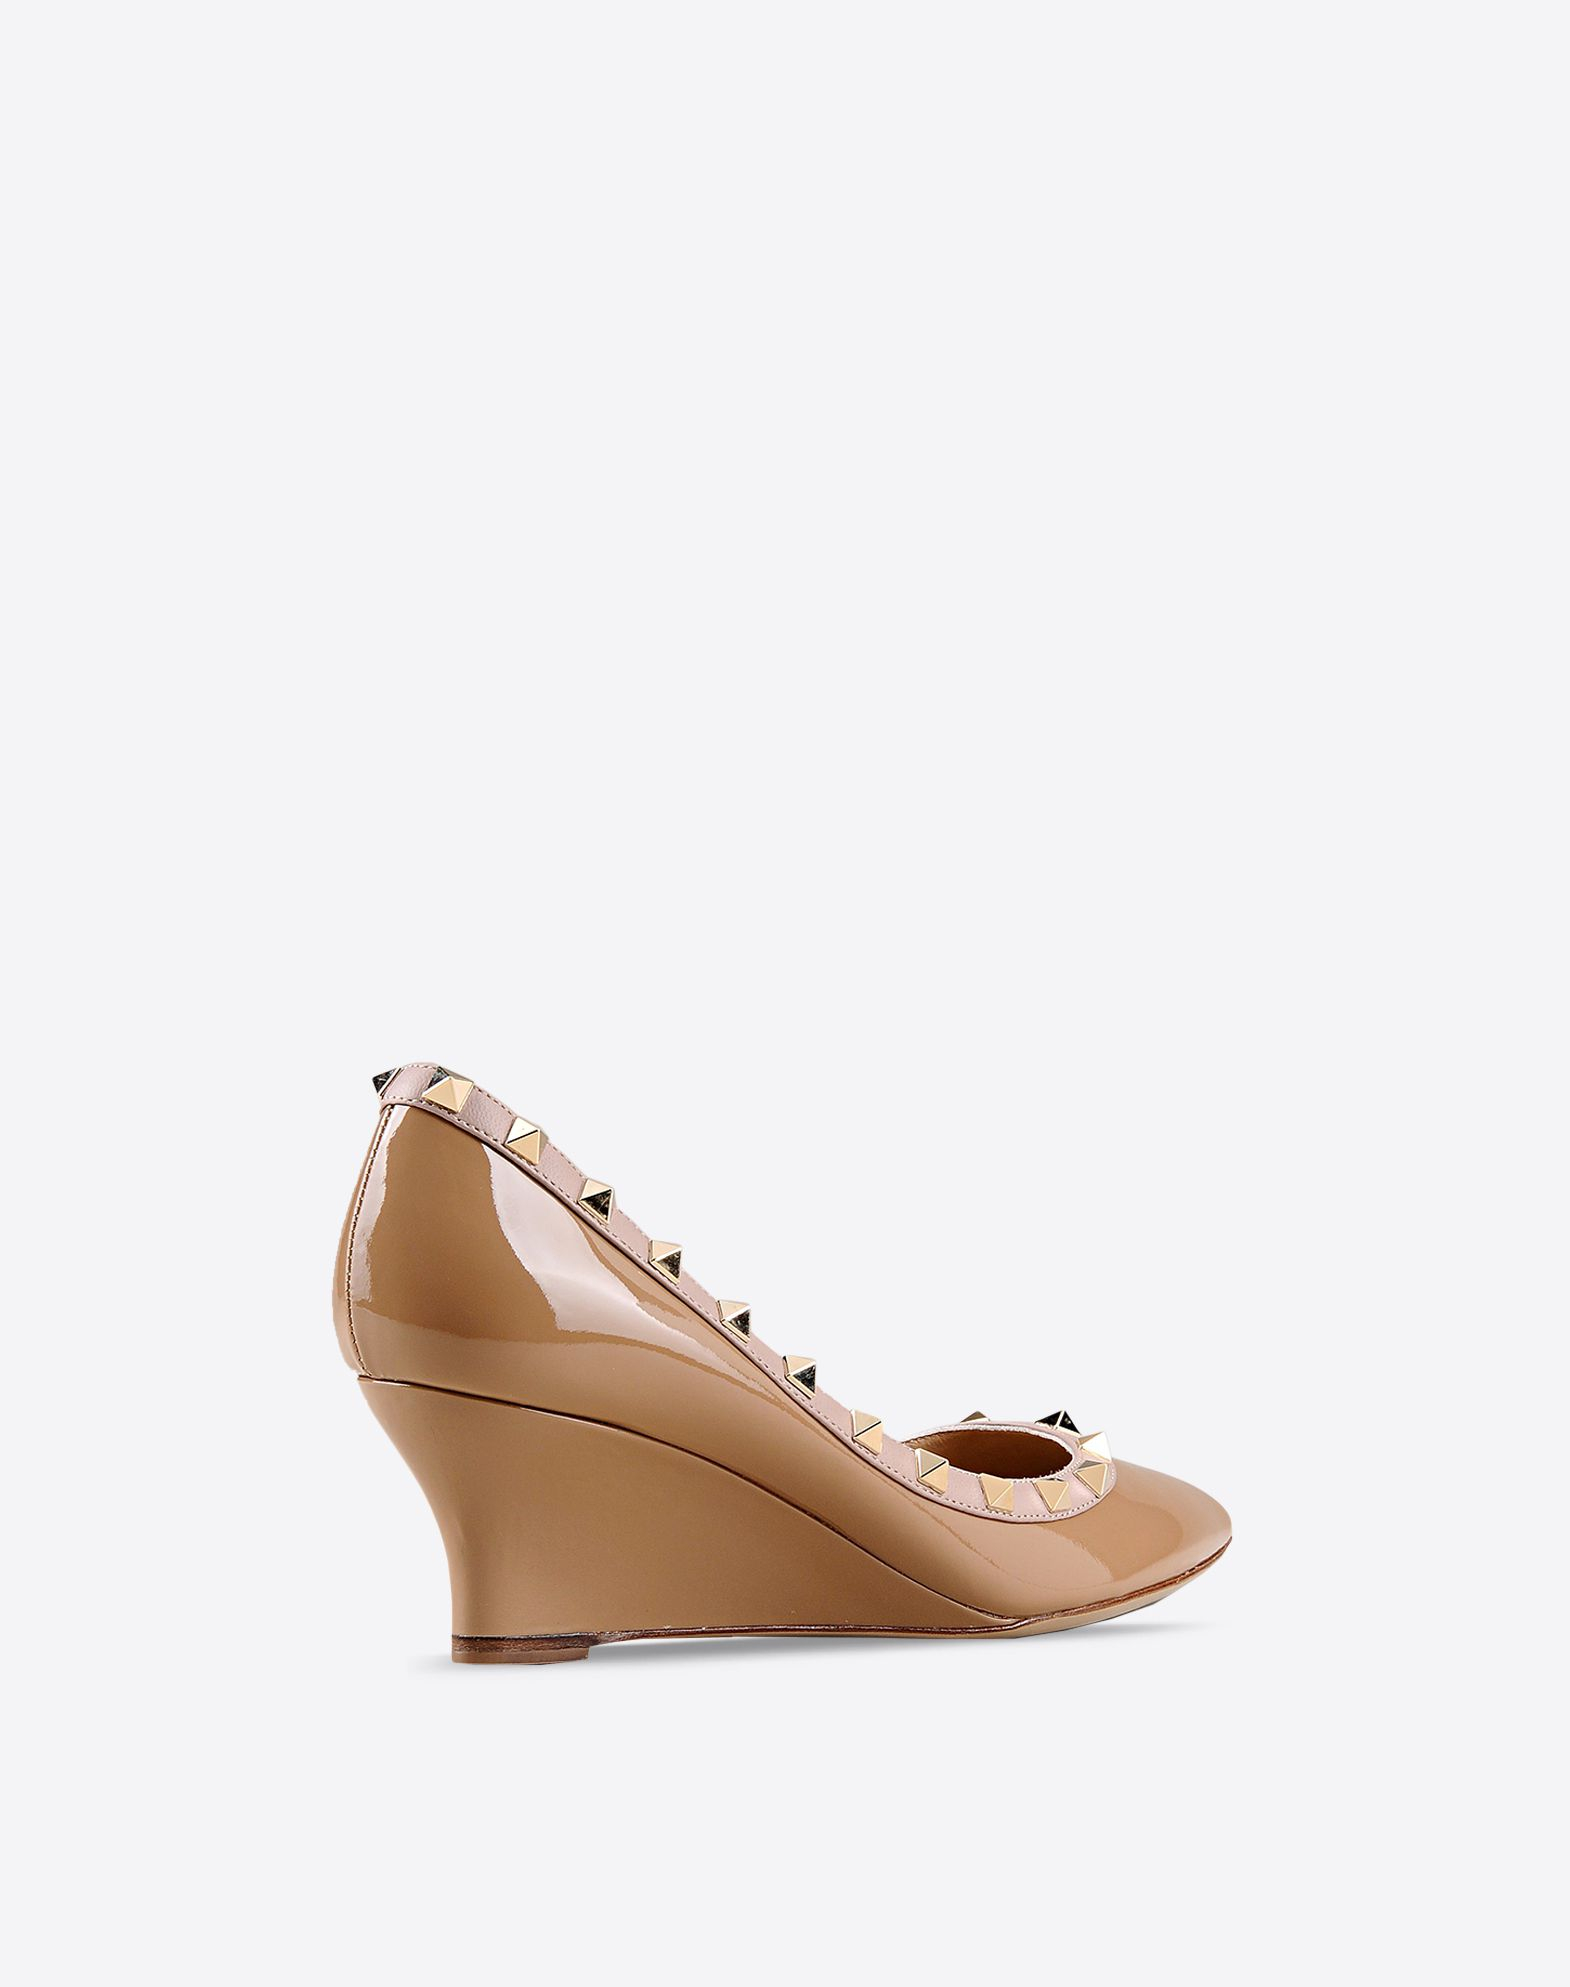 1732b27f0e3c Wedge Shoes  Valentino Wedge Shoes